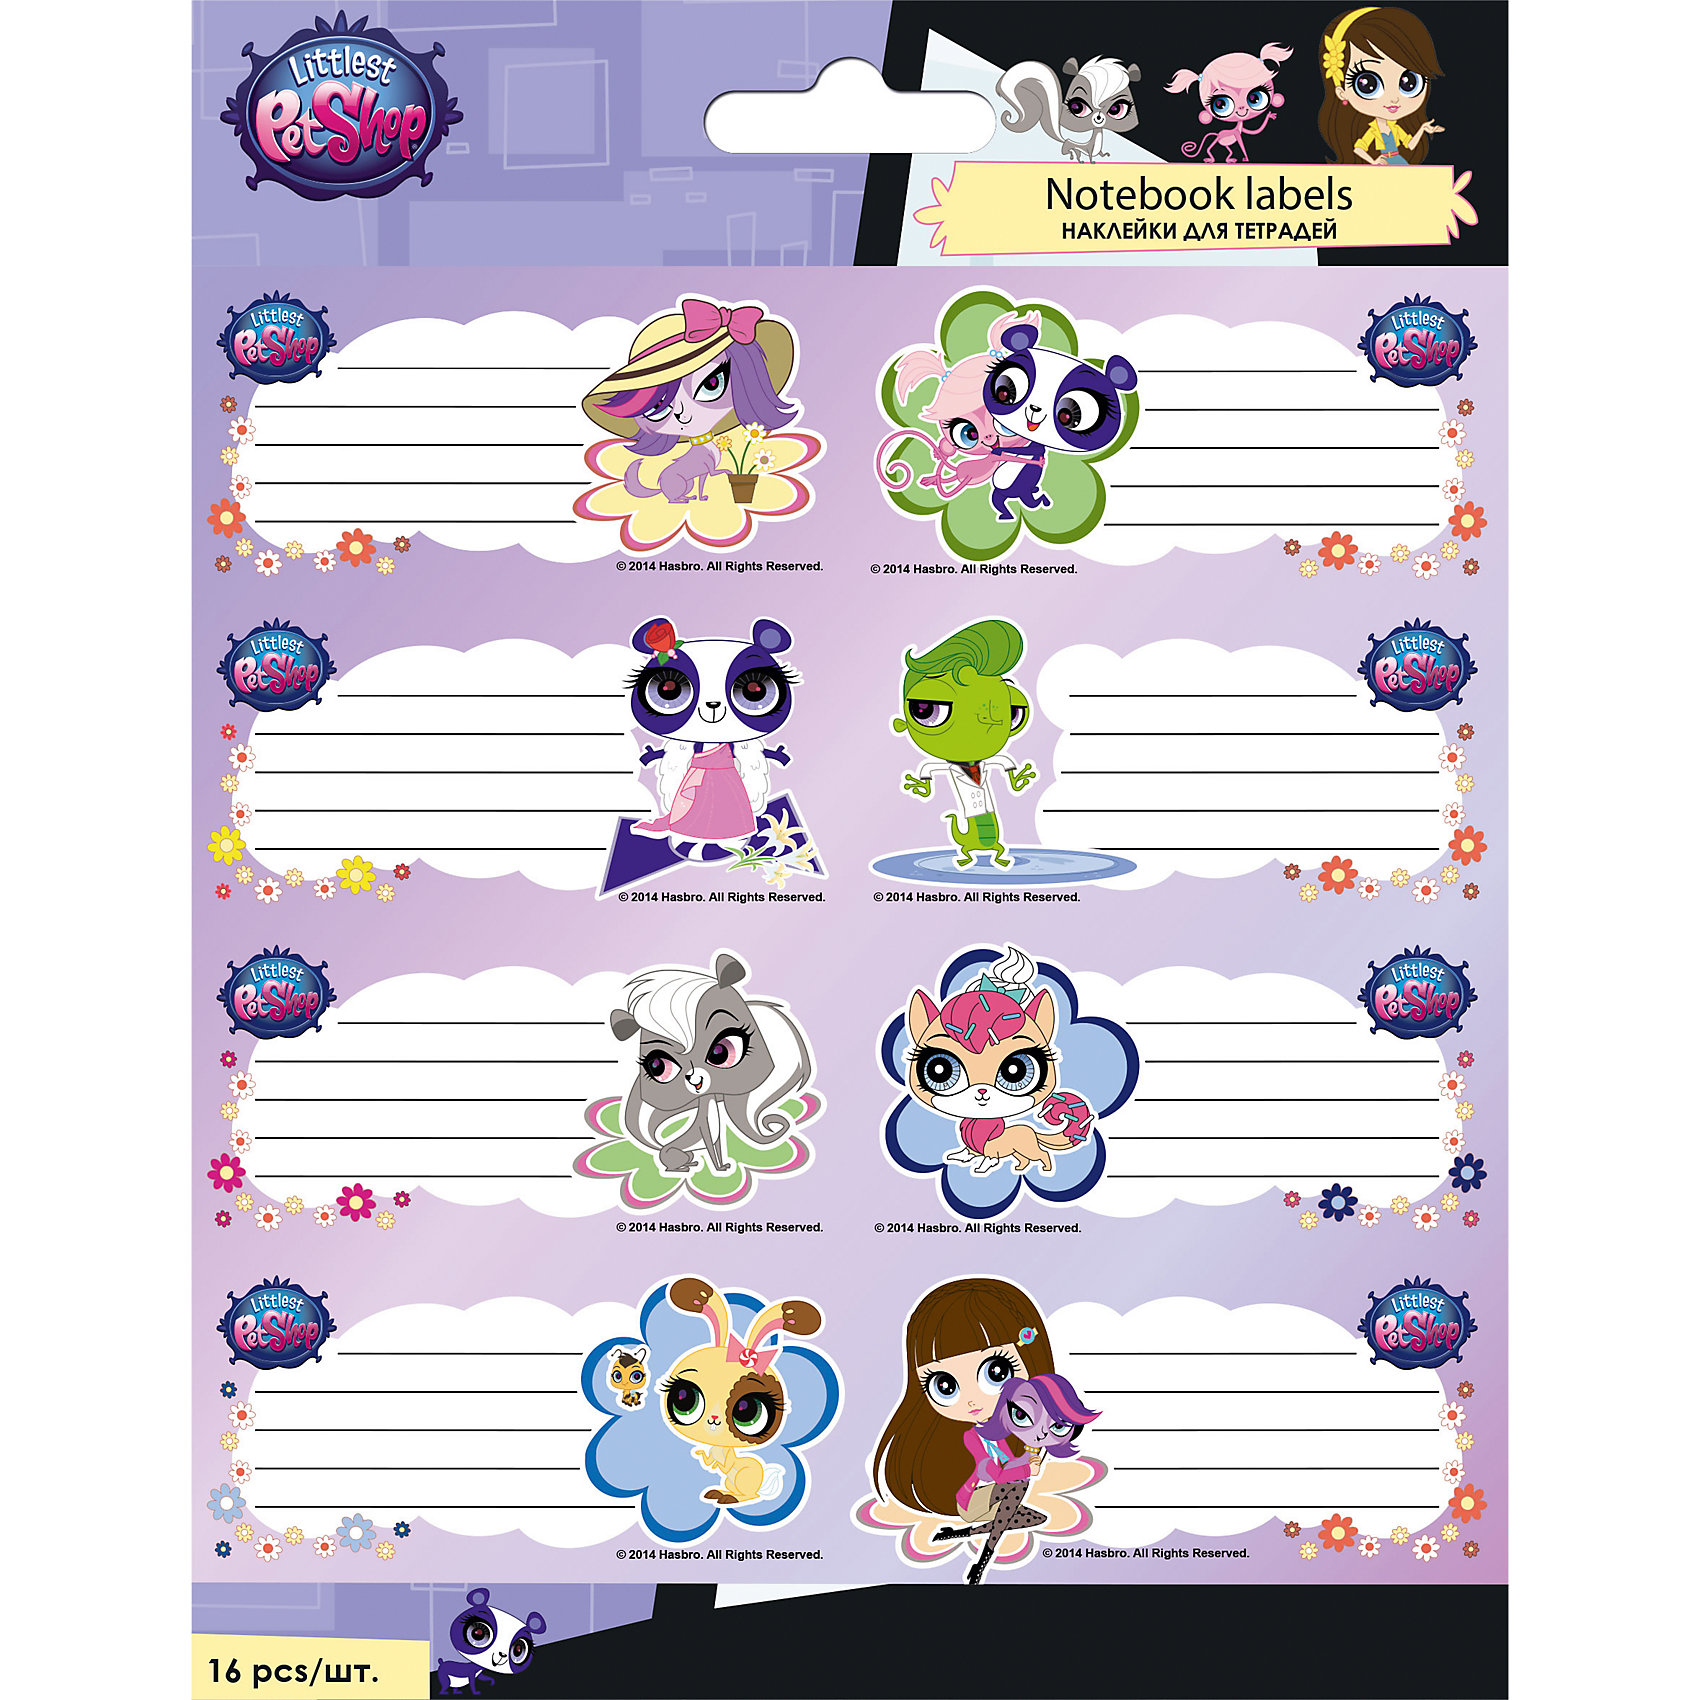 �������� ��� �������� Littlest Pet Shop����� ������������ ������� ��� �������� ������ ������������� ����� ������� � ������� ��������������� ������� ������� � �������������. � �������� ������ 2 ����� �� 8 ������� �� ������, � ������������ ������� ������. ����� �������� � ��-����� � ������������.<br><br>�������������� ����������:<br><br>������: 20 � 16 ��. �������� ��� ��������, 77 x 39 ��, 2 ����� �� 8 ��. ������.<br><br>�������� ��� �������� Littlest Pet Shop (��������� ����������) ����� ������ � ����� ��������.<br><br>������ ��: 200<br>������� ��: 160<br>������ ��: 1<br>��� �: 22<br>������� �� �������: 48<br>������� �� �������: 84<br>���: �������<br>�������: �������